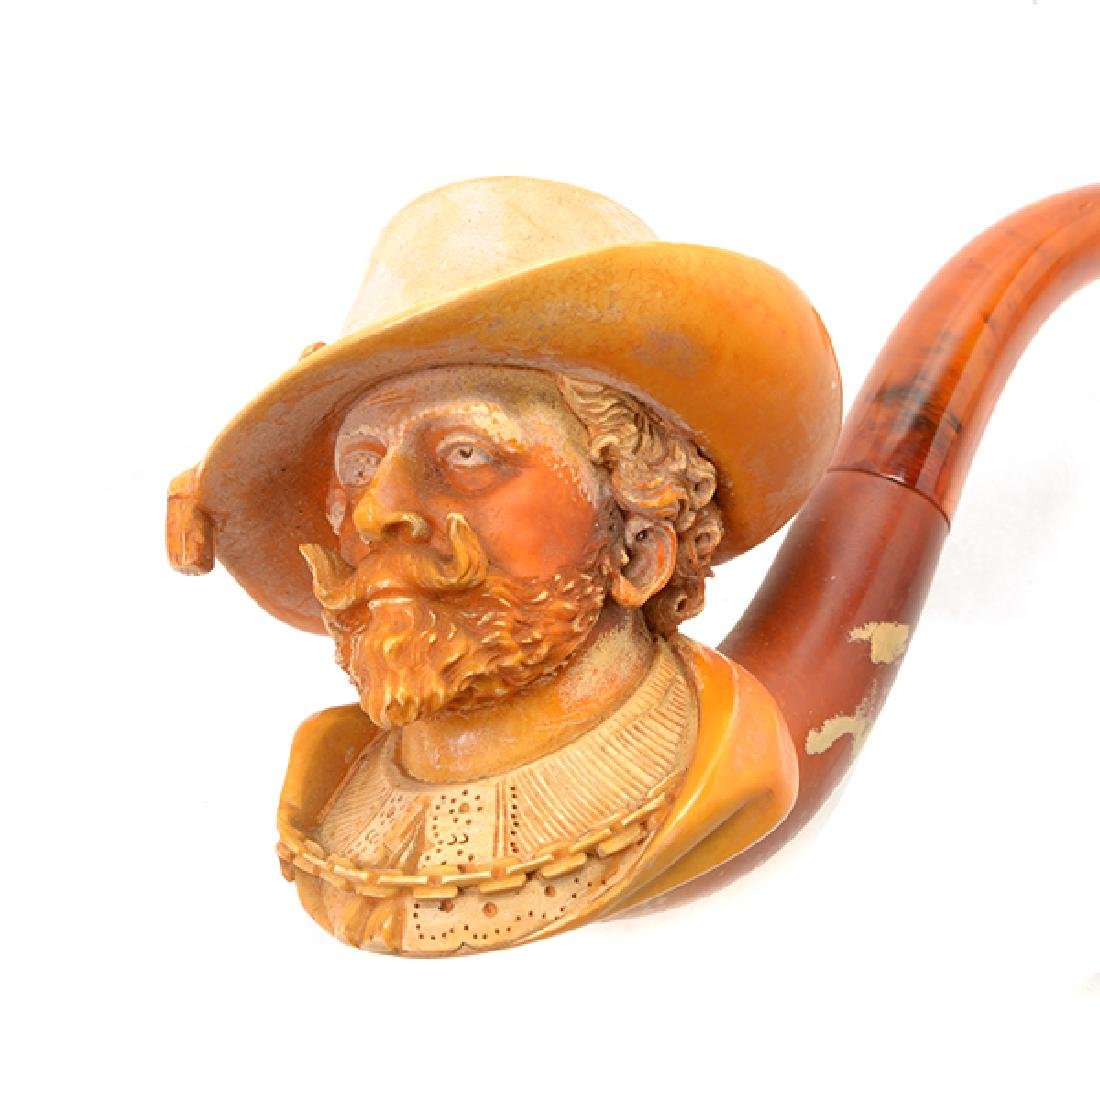 Meerschaum Cased Pipe of Sir Walter Raleigh - 6